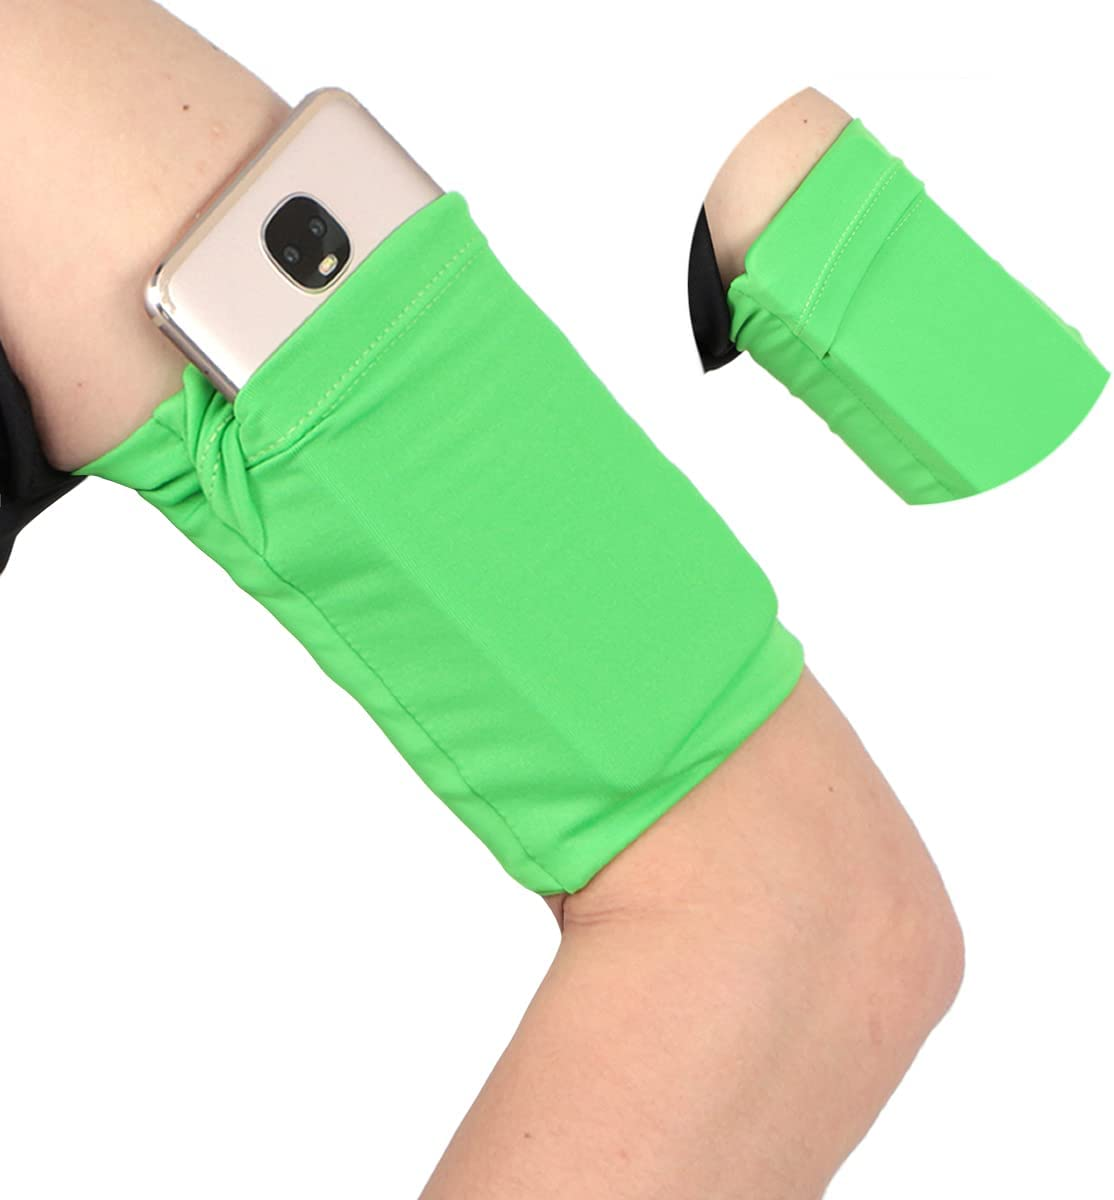 Running Wristband Armband for Cellphone Keys Running - Cell Phone Arm Band Sleeve Holder Pouch for iPhone 6 6S 7 8 X XR XS 11 Pro Android Samsung Galaxy Running Jogging Walking Exercise - Small/Green